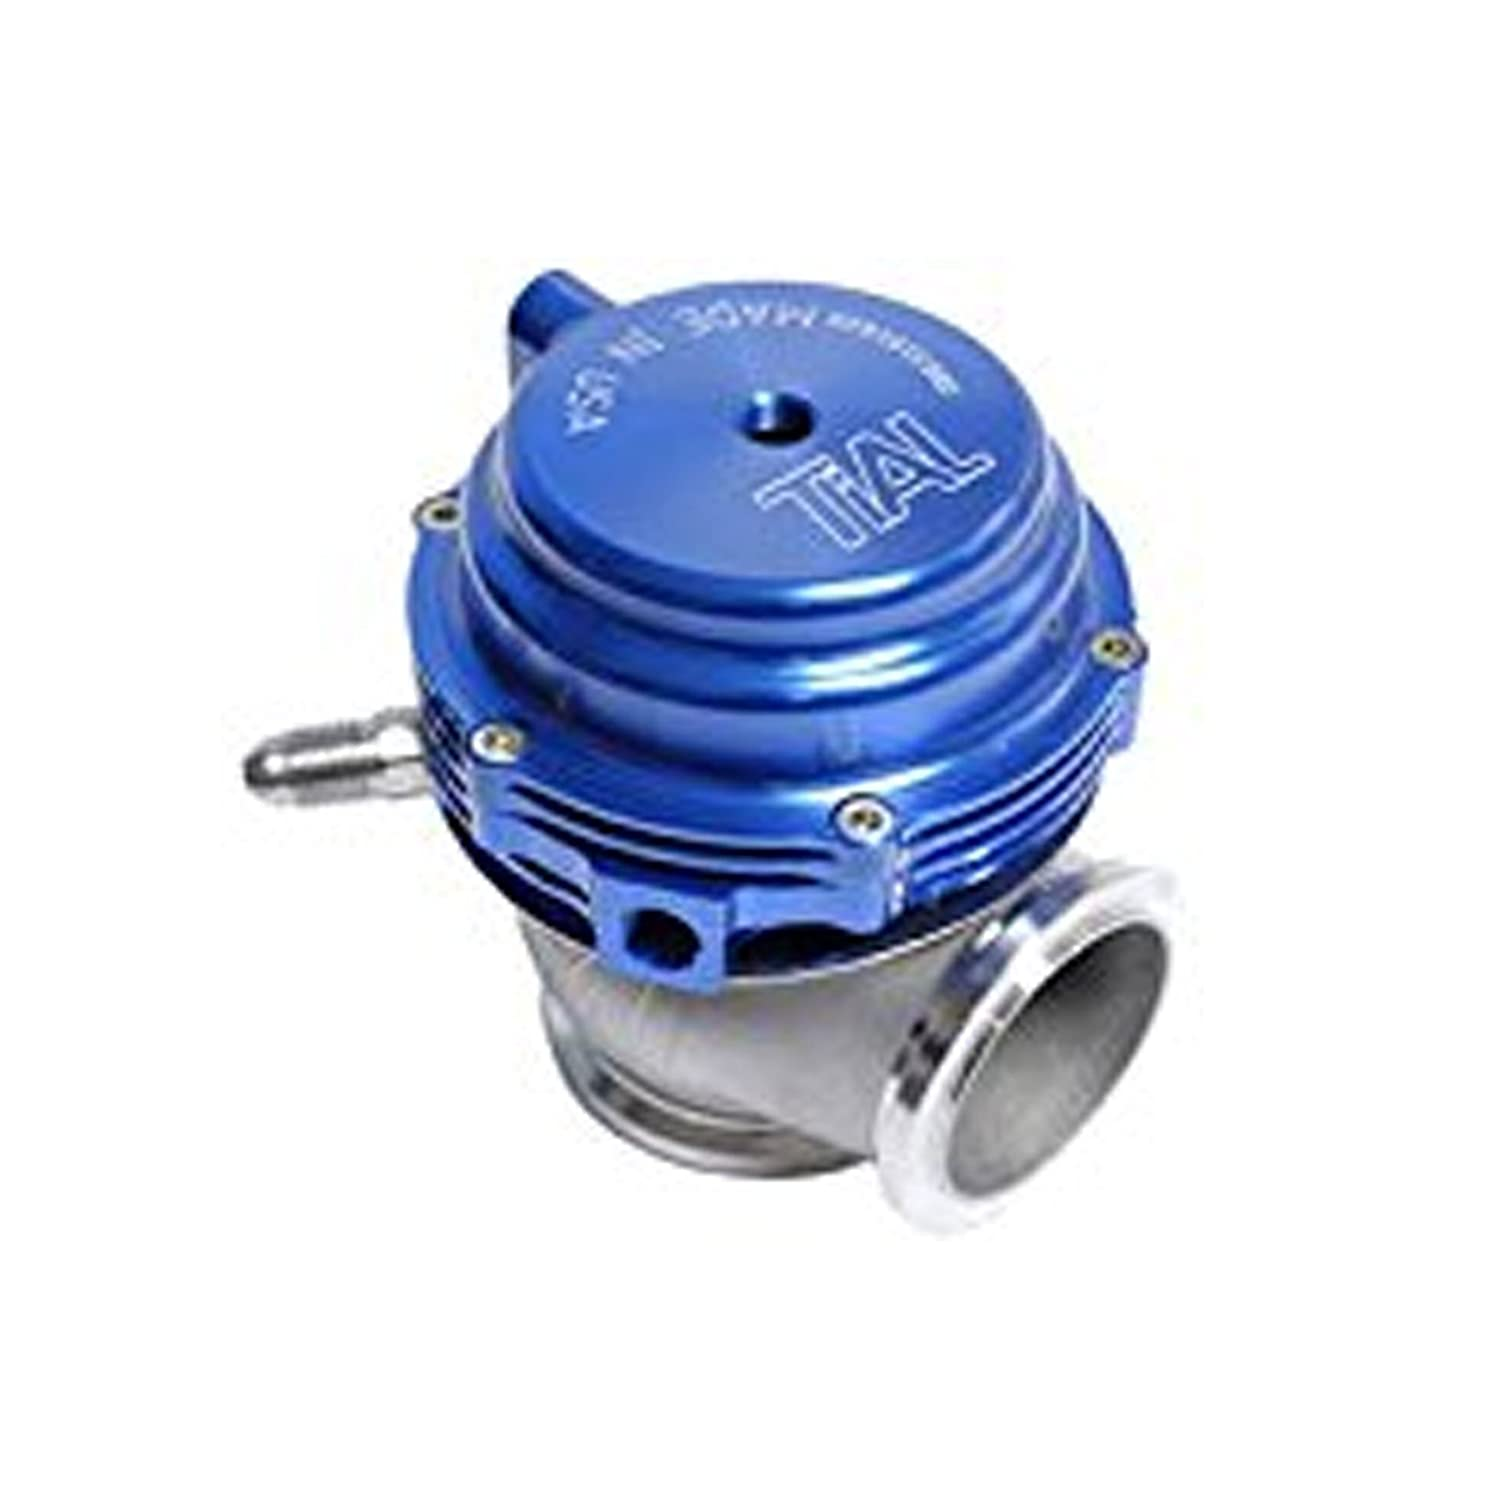 TiAL MVR 44mm Wastegate w// 7 Springs Blue Body